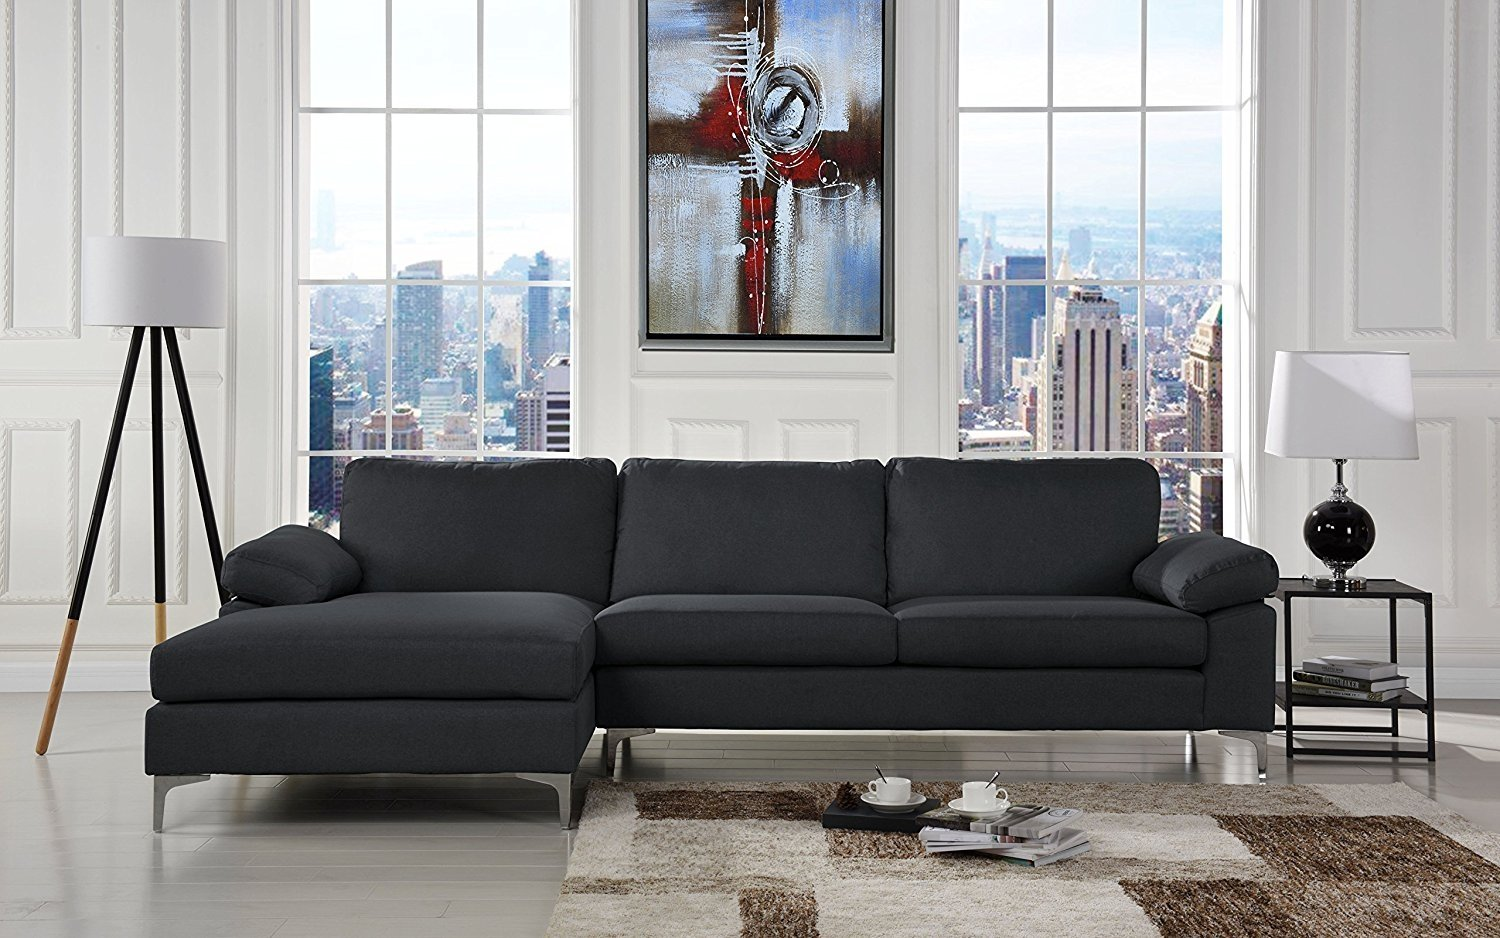 details about sectional couch dark grey left chaise lounge low profile frame sectional sofa